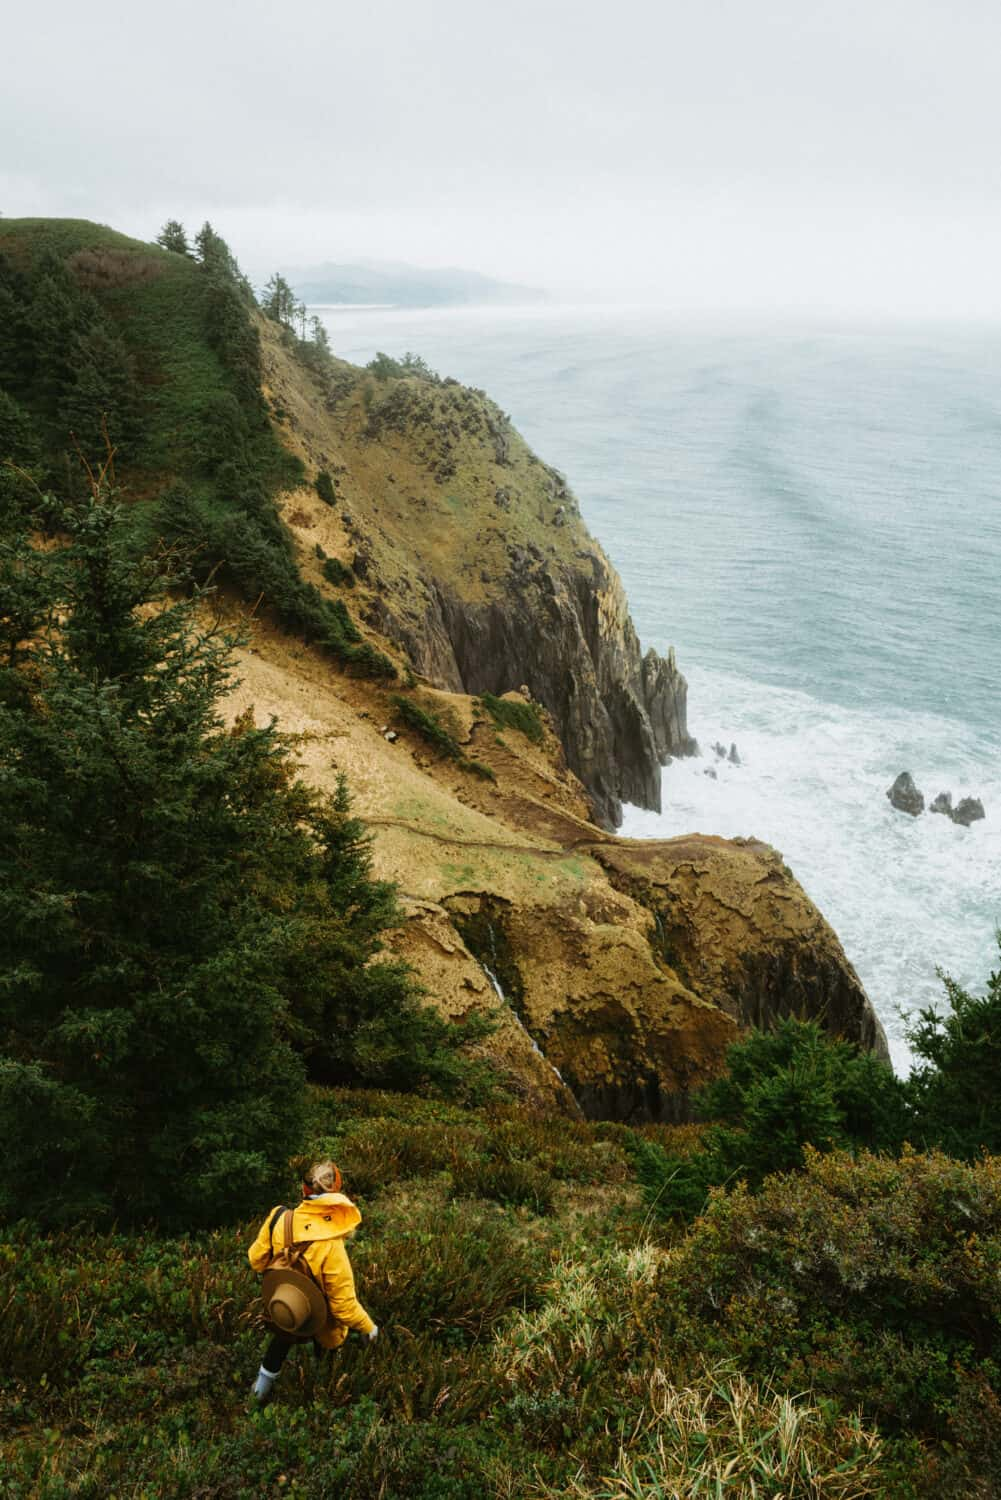 Places to see near Manzanita, Oregon